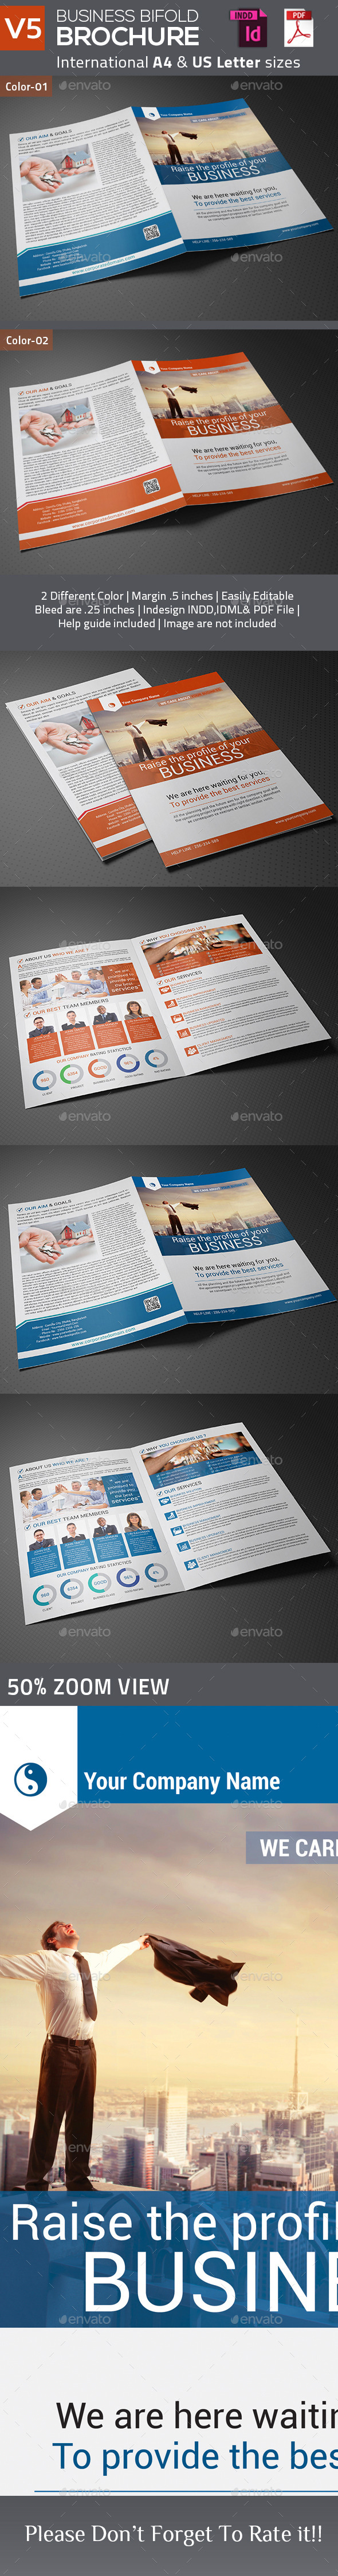 Business Bifold Brochure V5